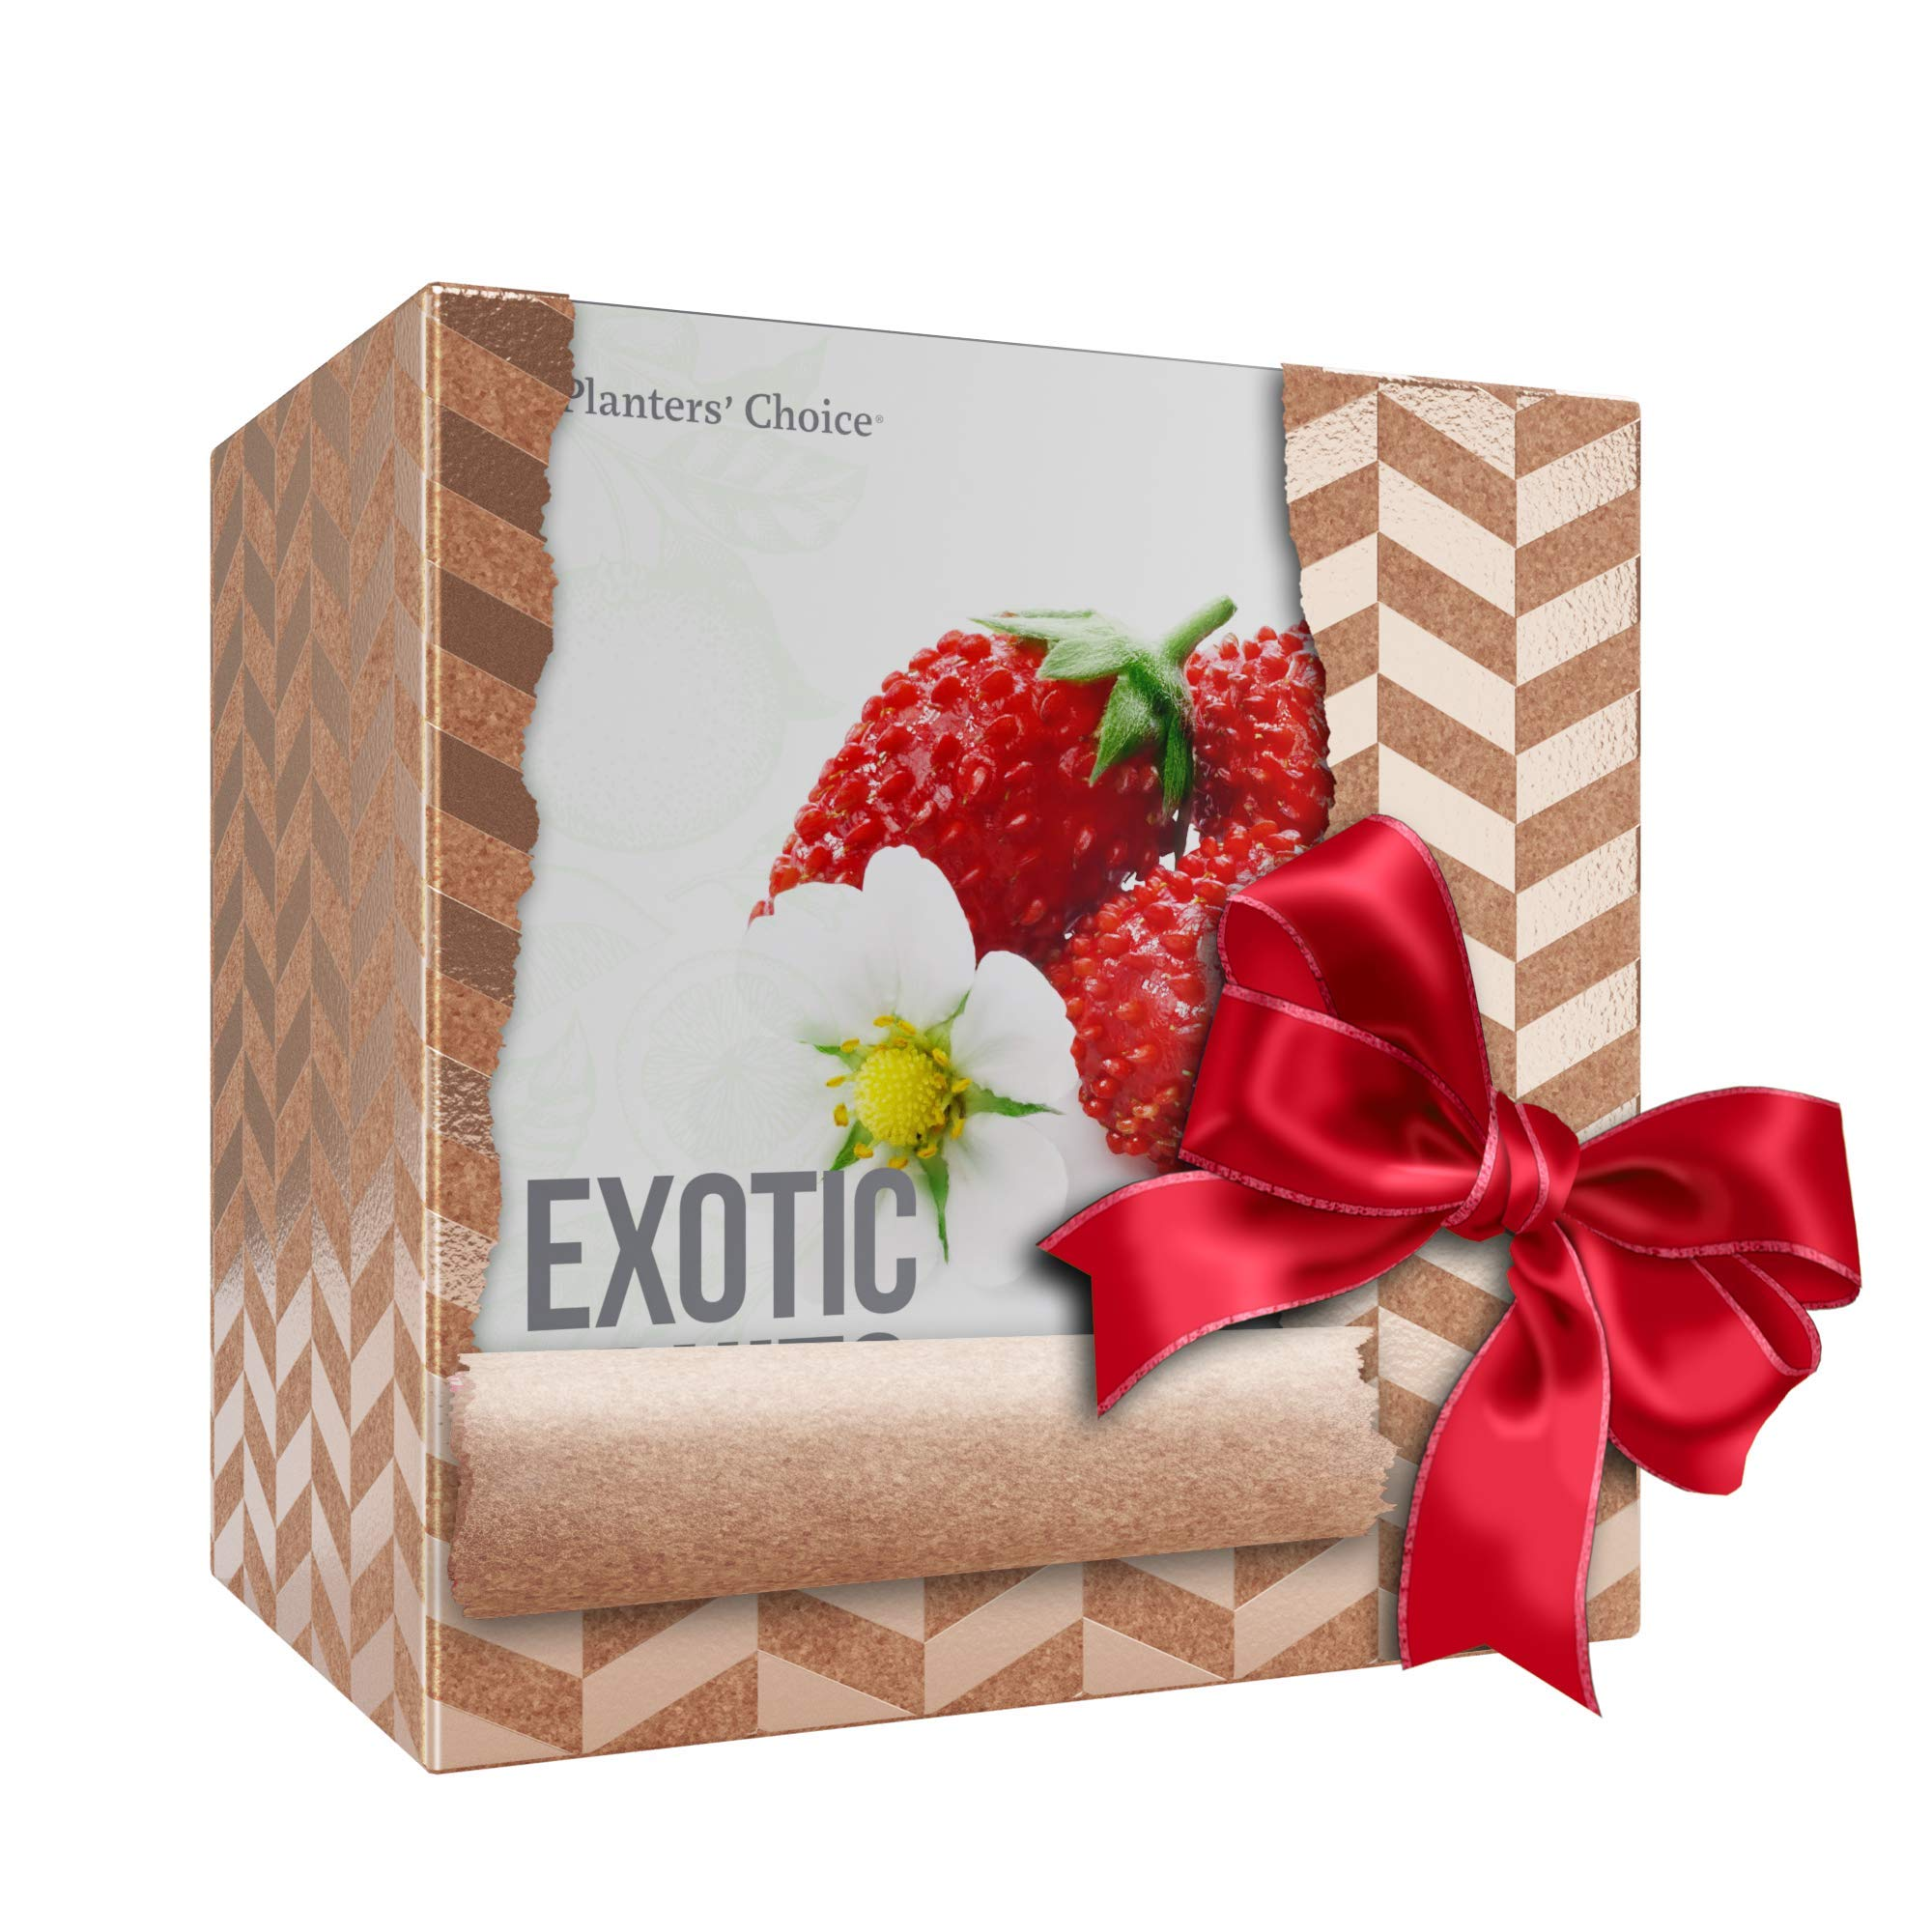 Planters' Choice Exotic Fruits Growing Kit - Everything Included to Easily Grow 4 Unique Fruits - Strawberries, Goji Berries, Honeydew, Watermelon + Moisture Meter by Planters' Choice (Image #9)